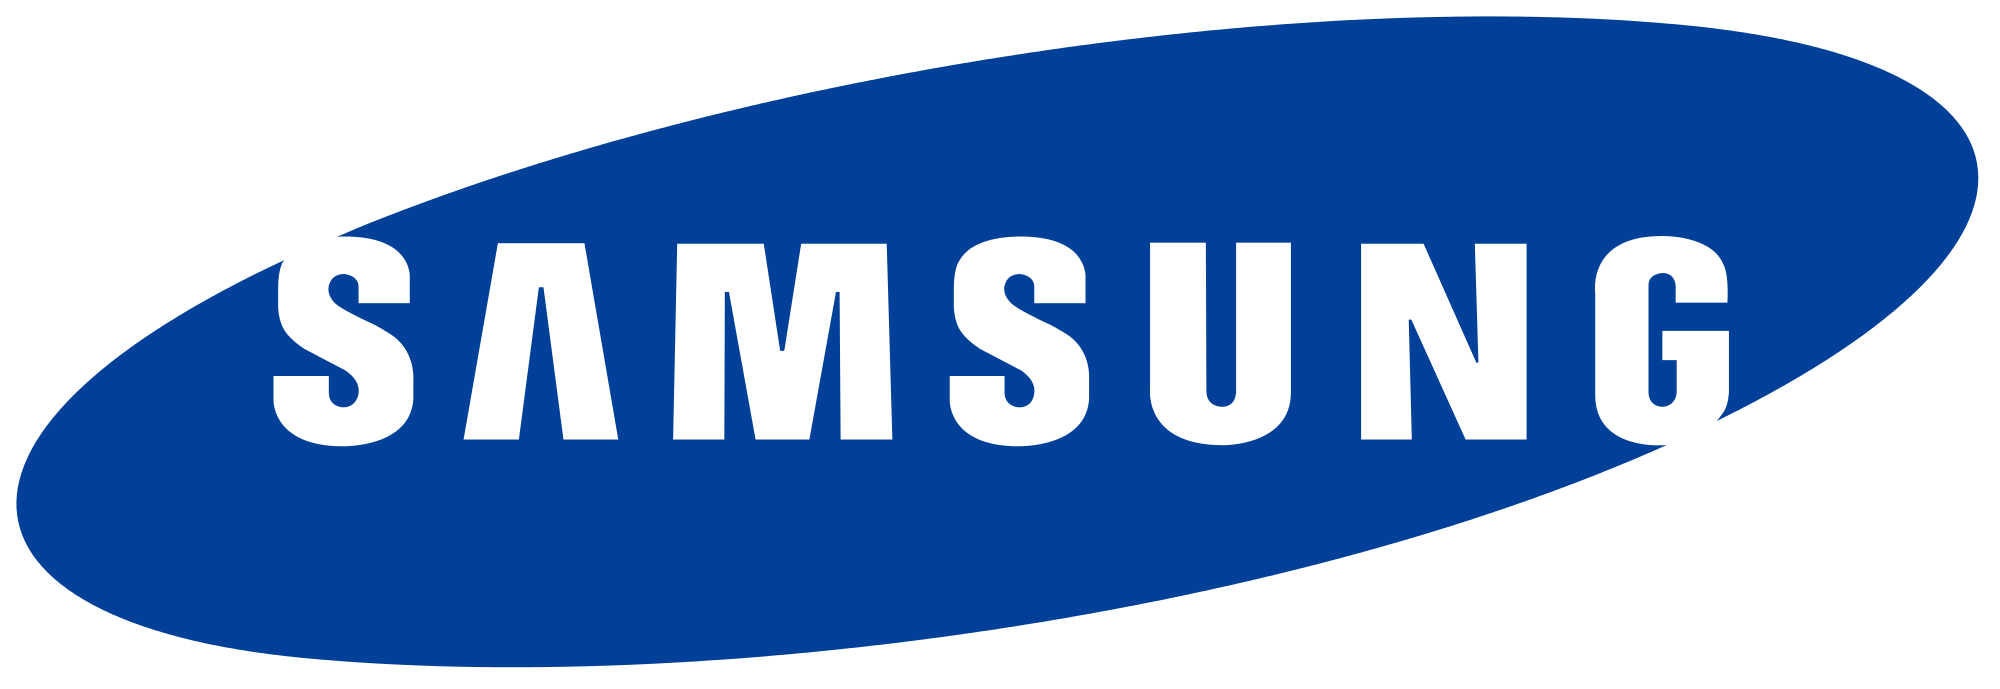 Samsung is all set to lead mobile health tracking